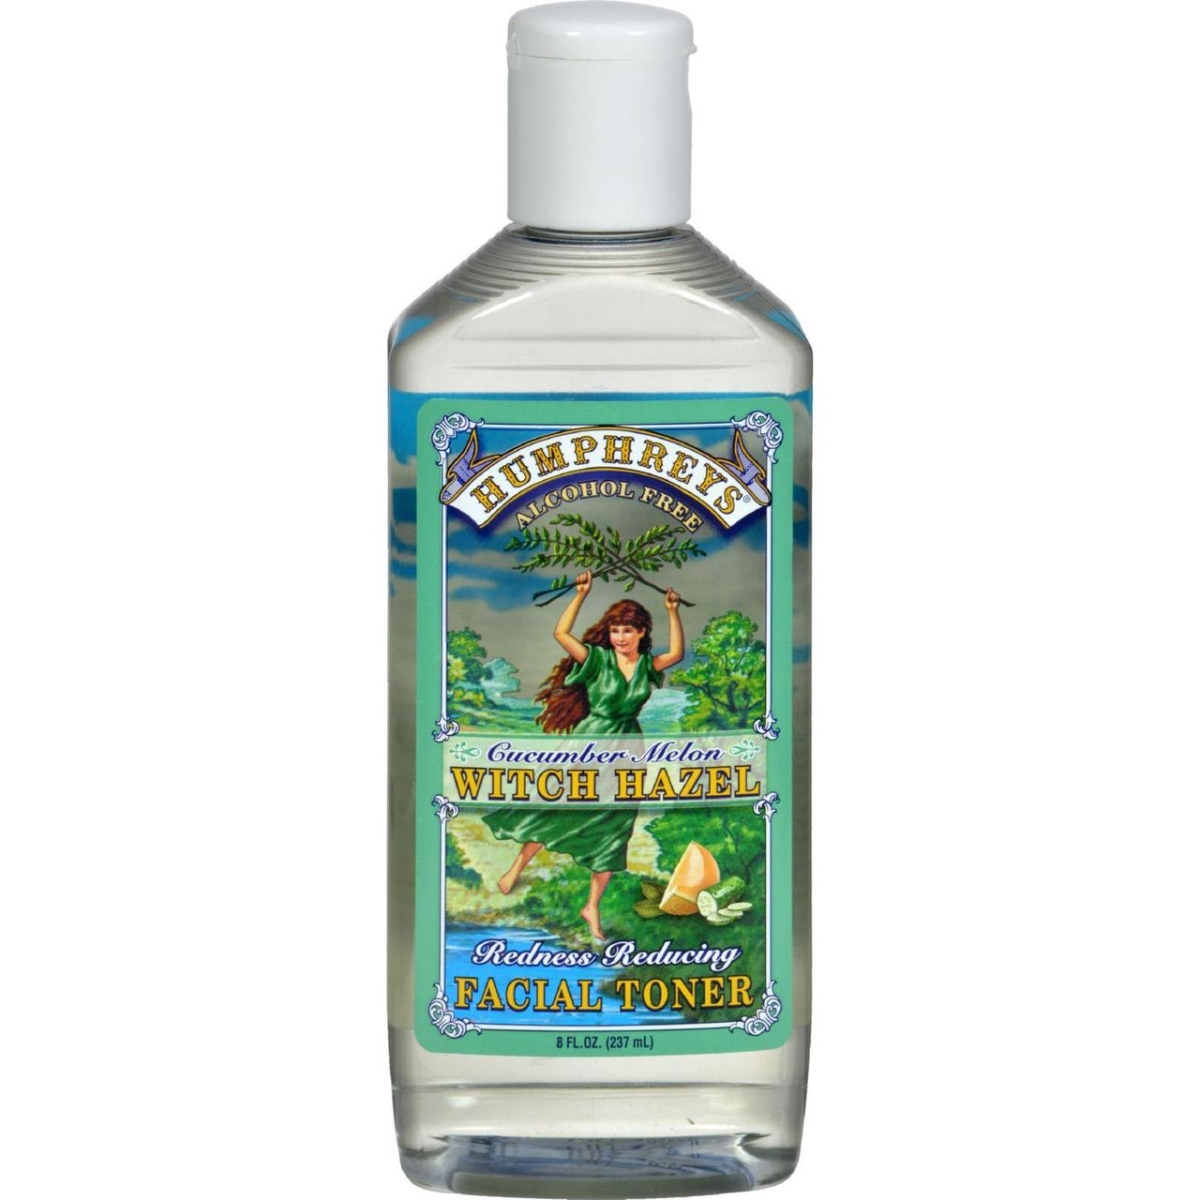 Humphreys Homeopathic Remedies HG0938530 8 fl oz Witch Hazel Cucumber Melon